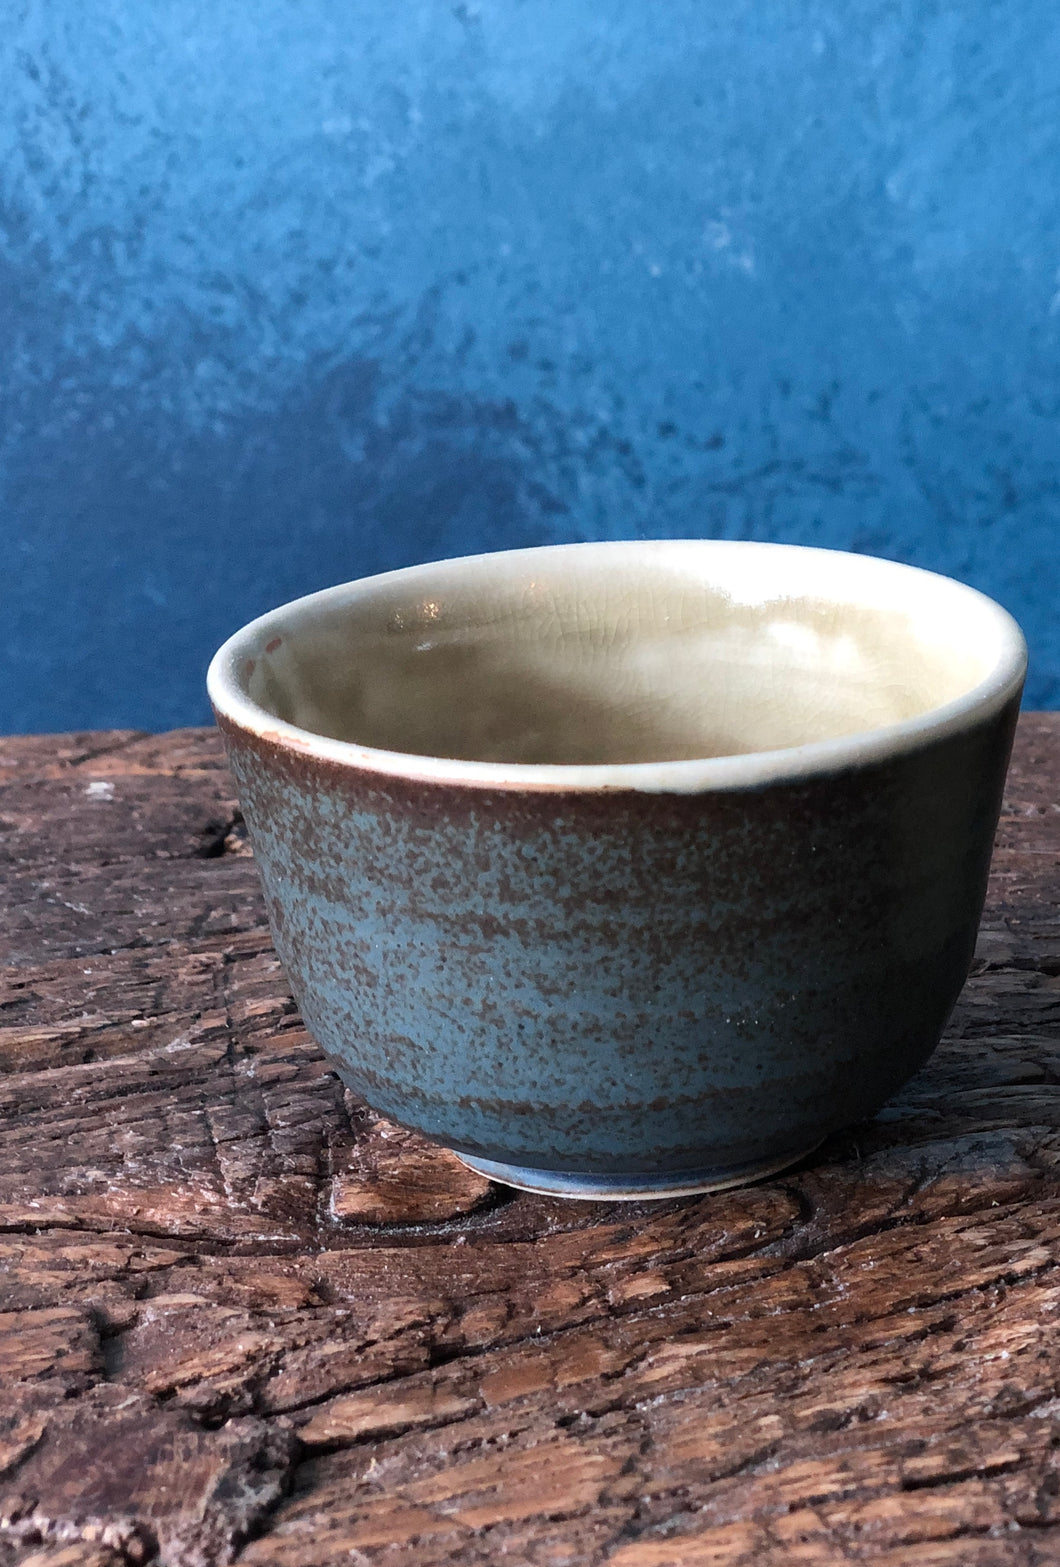 Chinese Teacup, Handmade Pottery